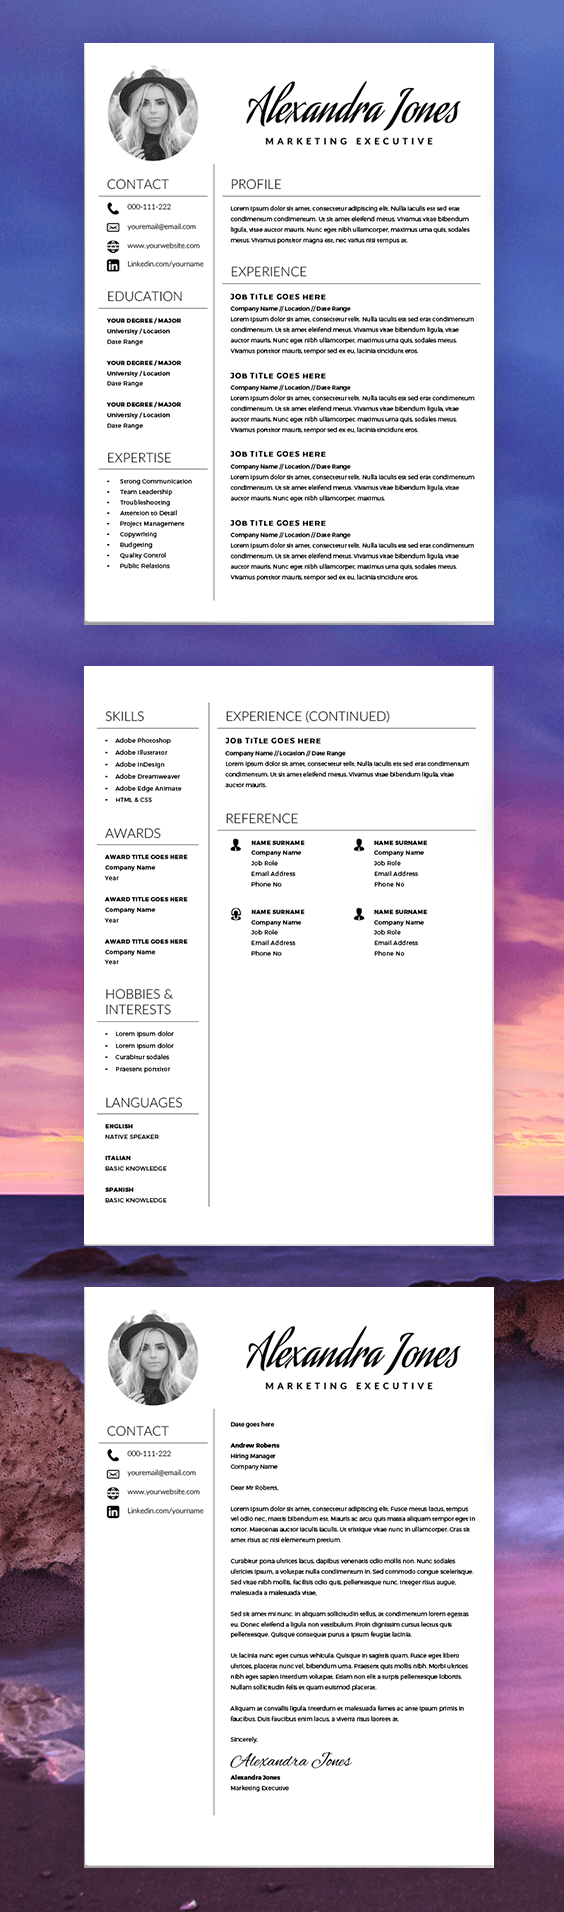 Elegant Resume Template - Creative Resume - Cv Template - Free Cover Letter  - Ms Word On Mac / Pc - Modern Resumes - Instant Download